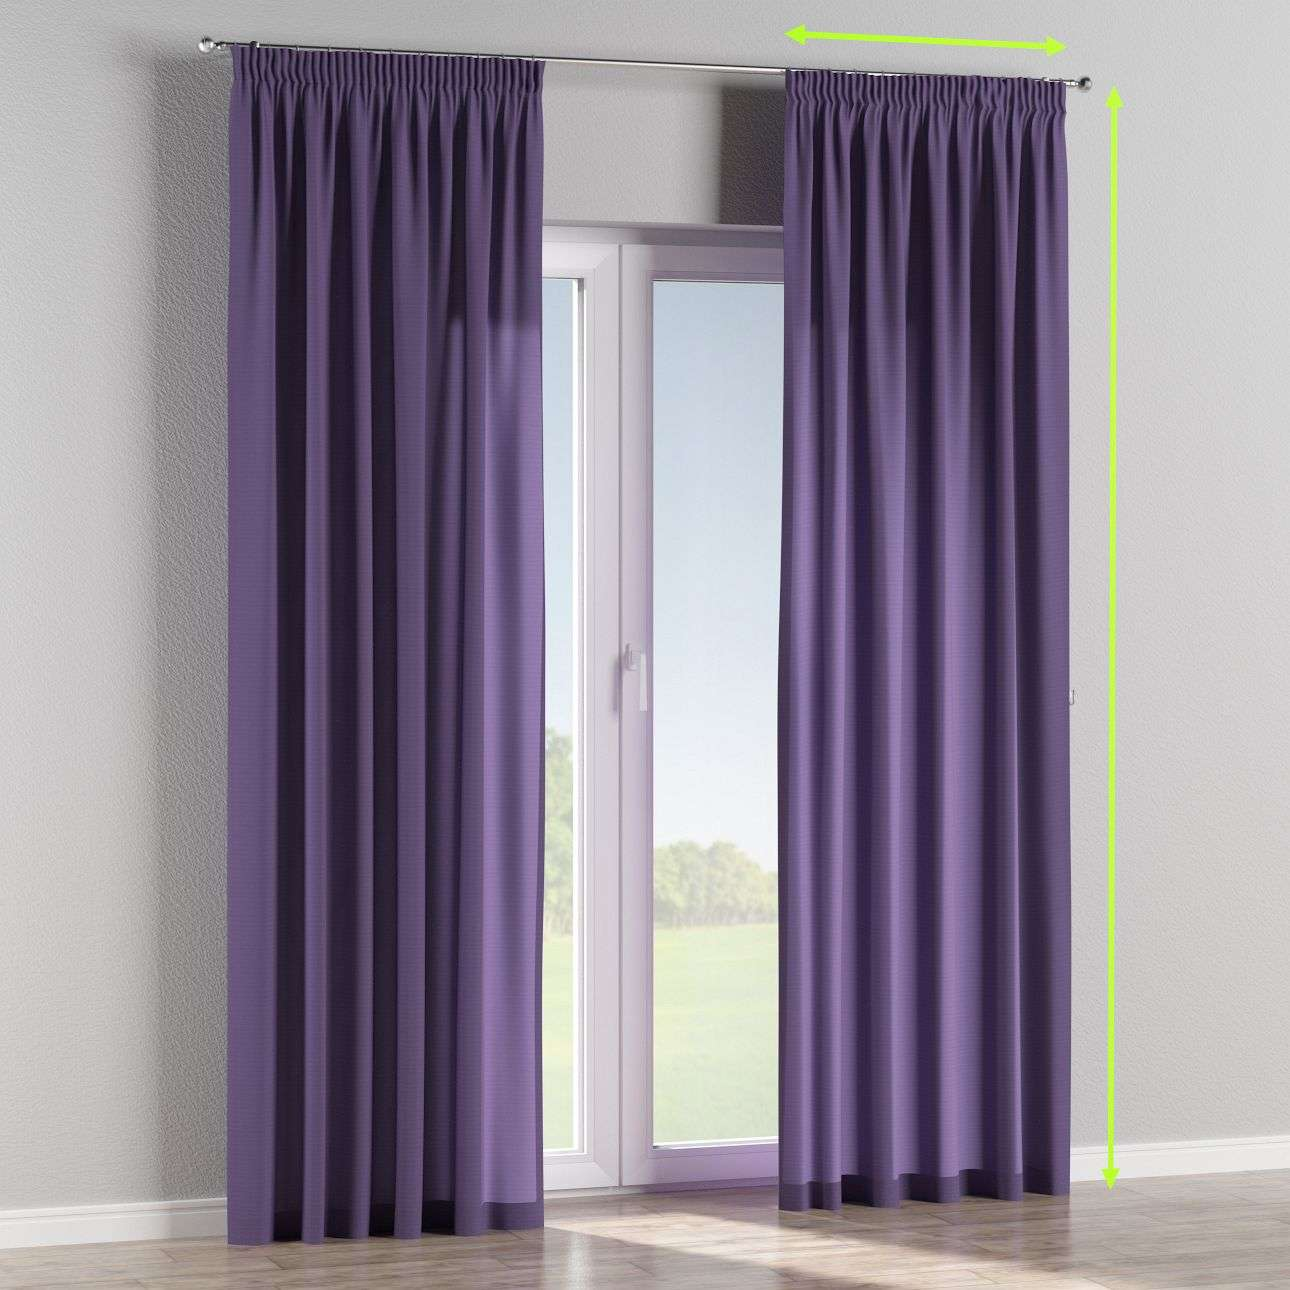 Pencil pleat lined curtains in collection Jupiter, fabric: 127-75